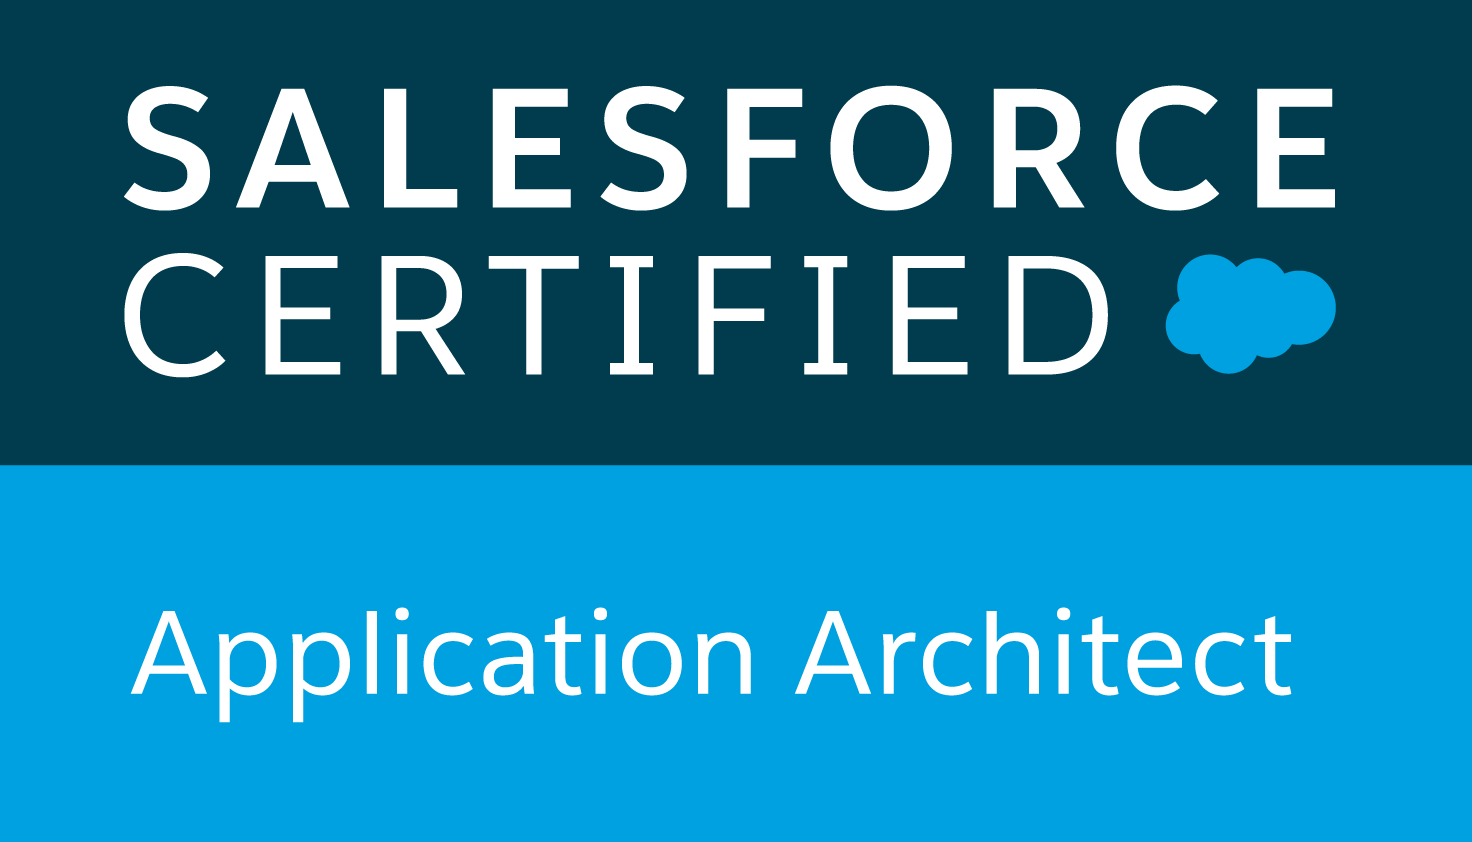 salesforce certified Appliction Architect